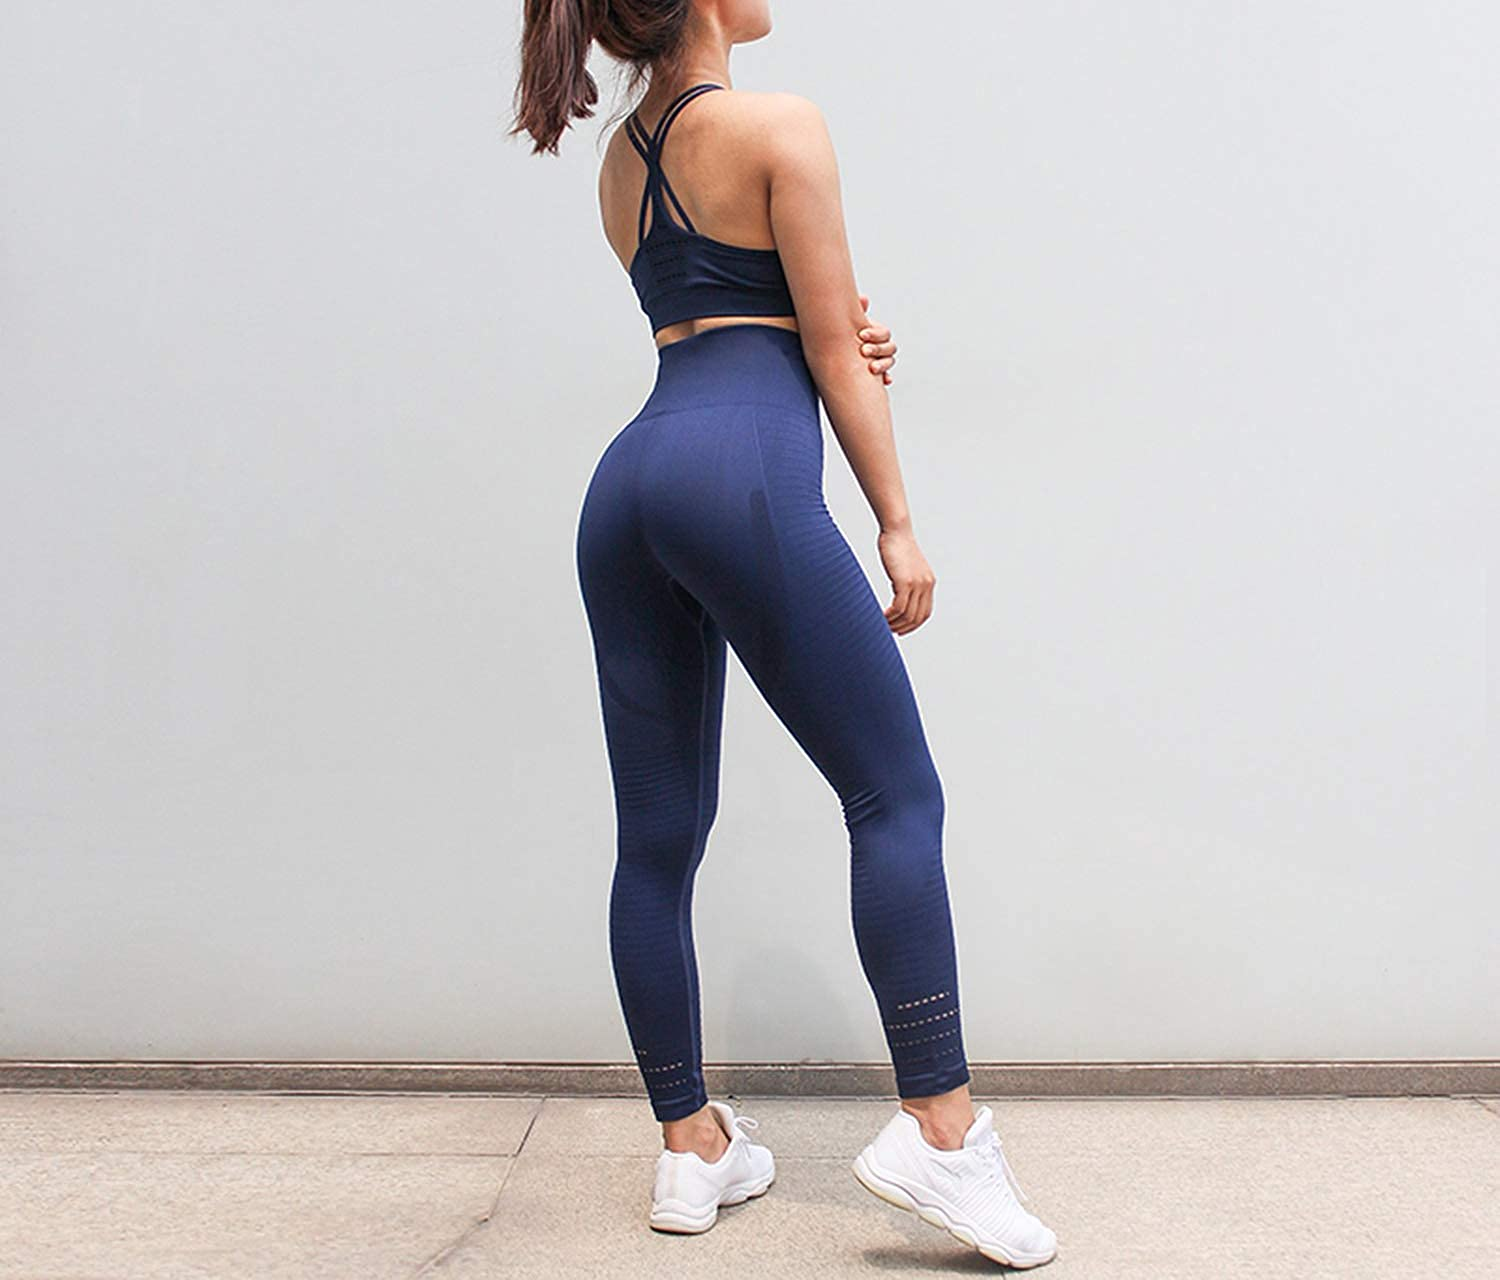 Talk about heaven Womens Sports Suit Female Sportswear for Woman Gym Fitness Clothing Women Sport Wear Clothes